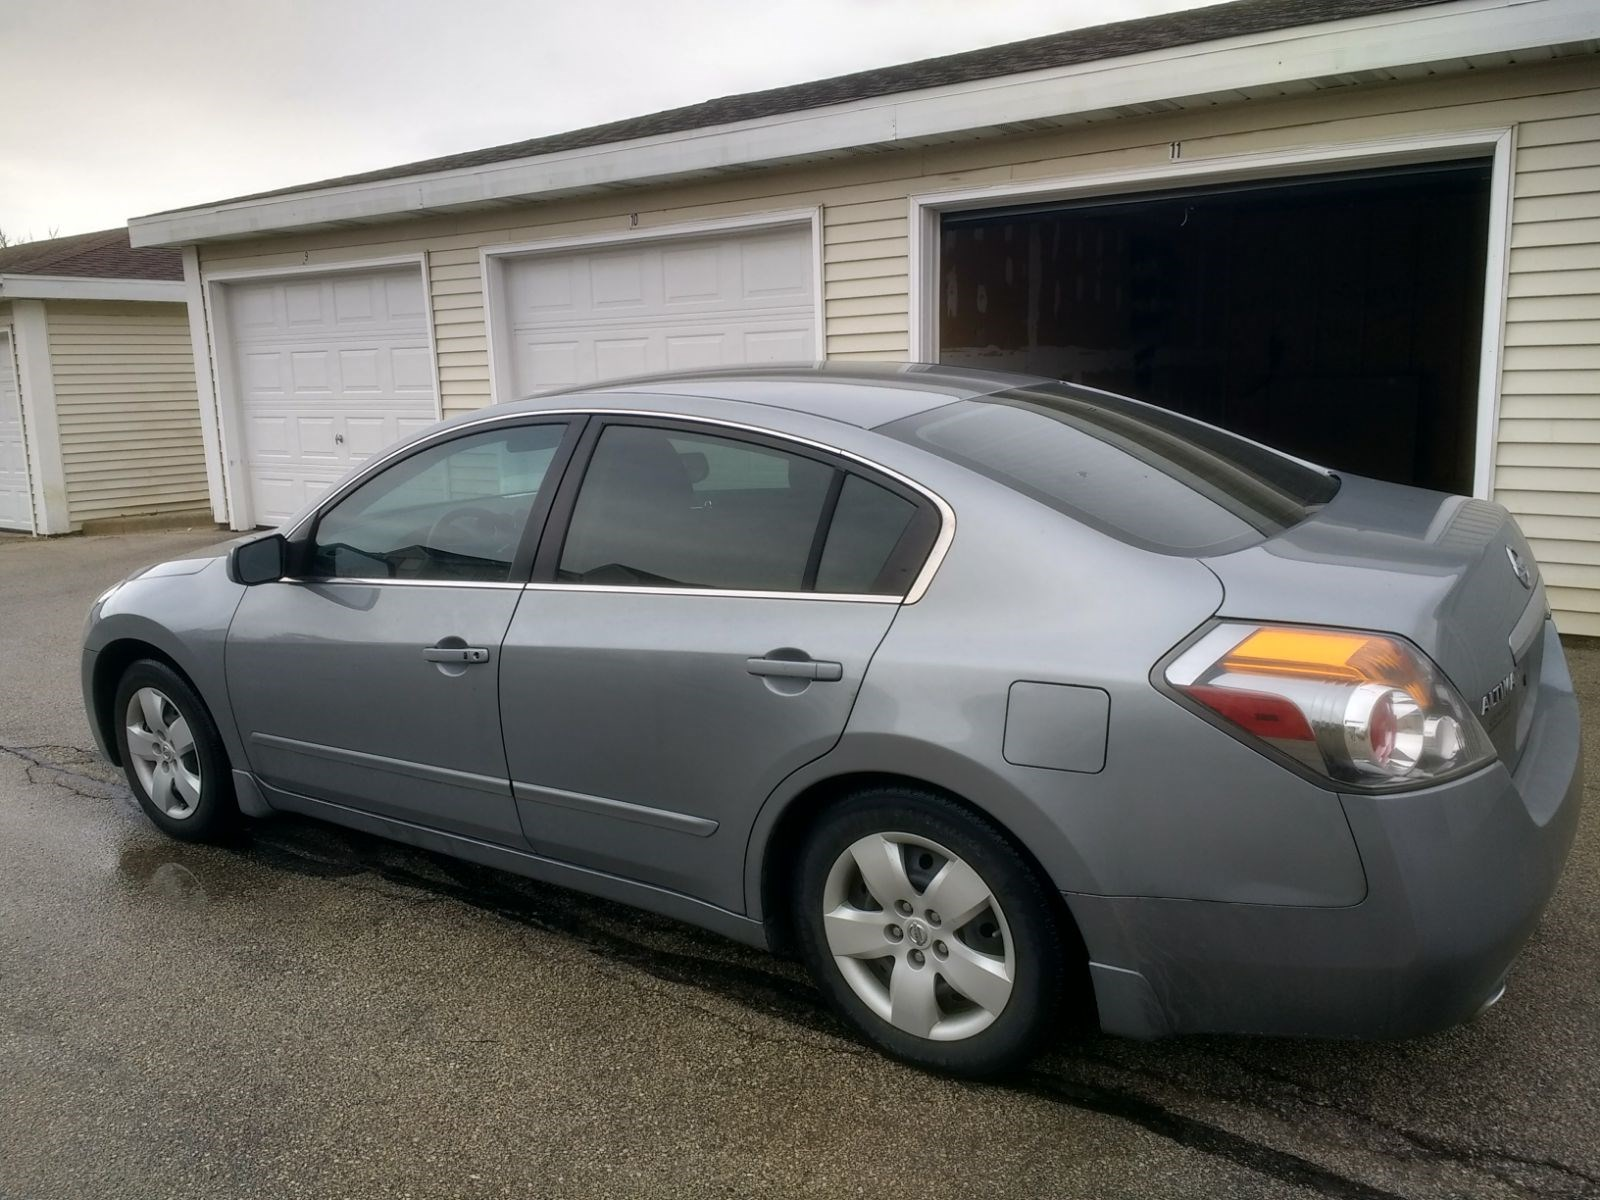 2007 Nissan Altima 2 5S Good Condition Used Nissan Altima Cars in